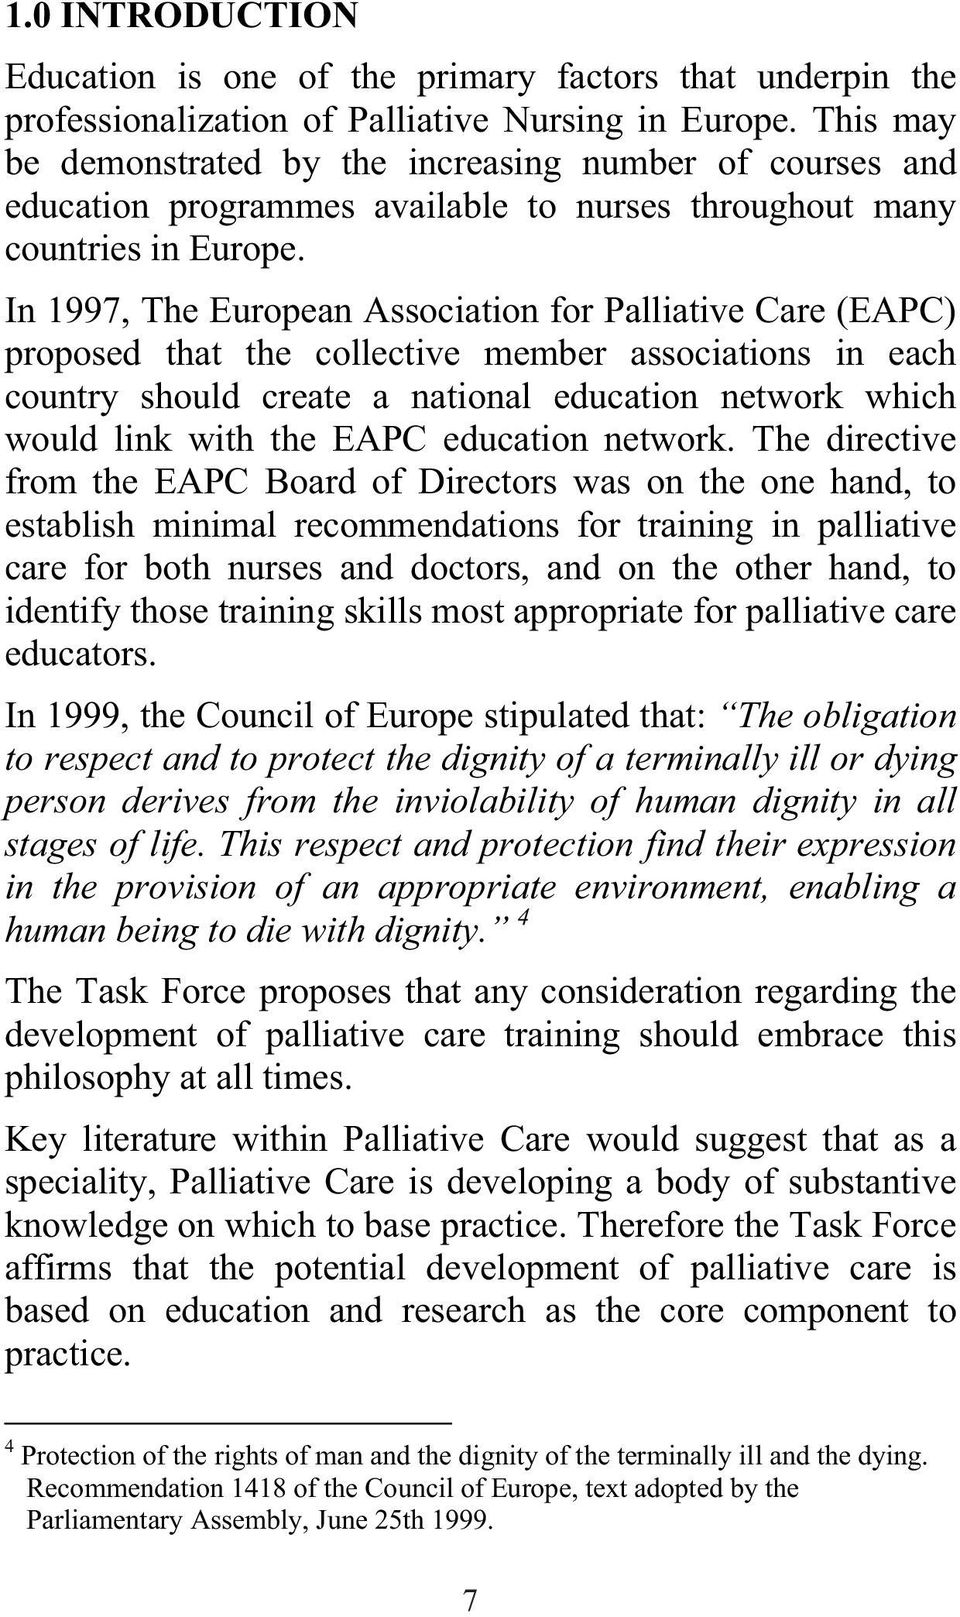 In 1997, The European Association for Palliative Care (EAPC) proposed that the collective member associations in each country should create a national education network which would link with the EAPC